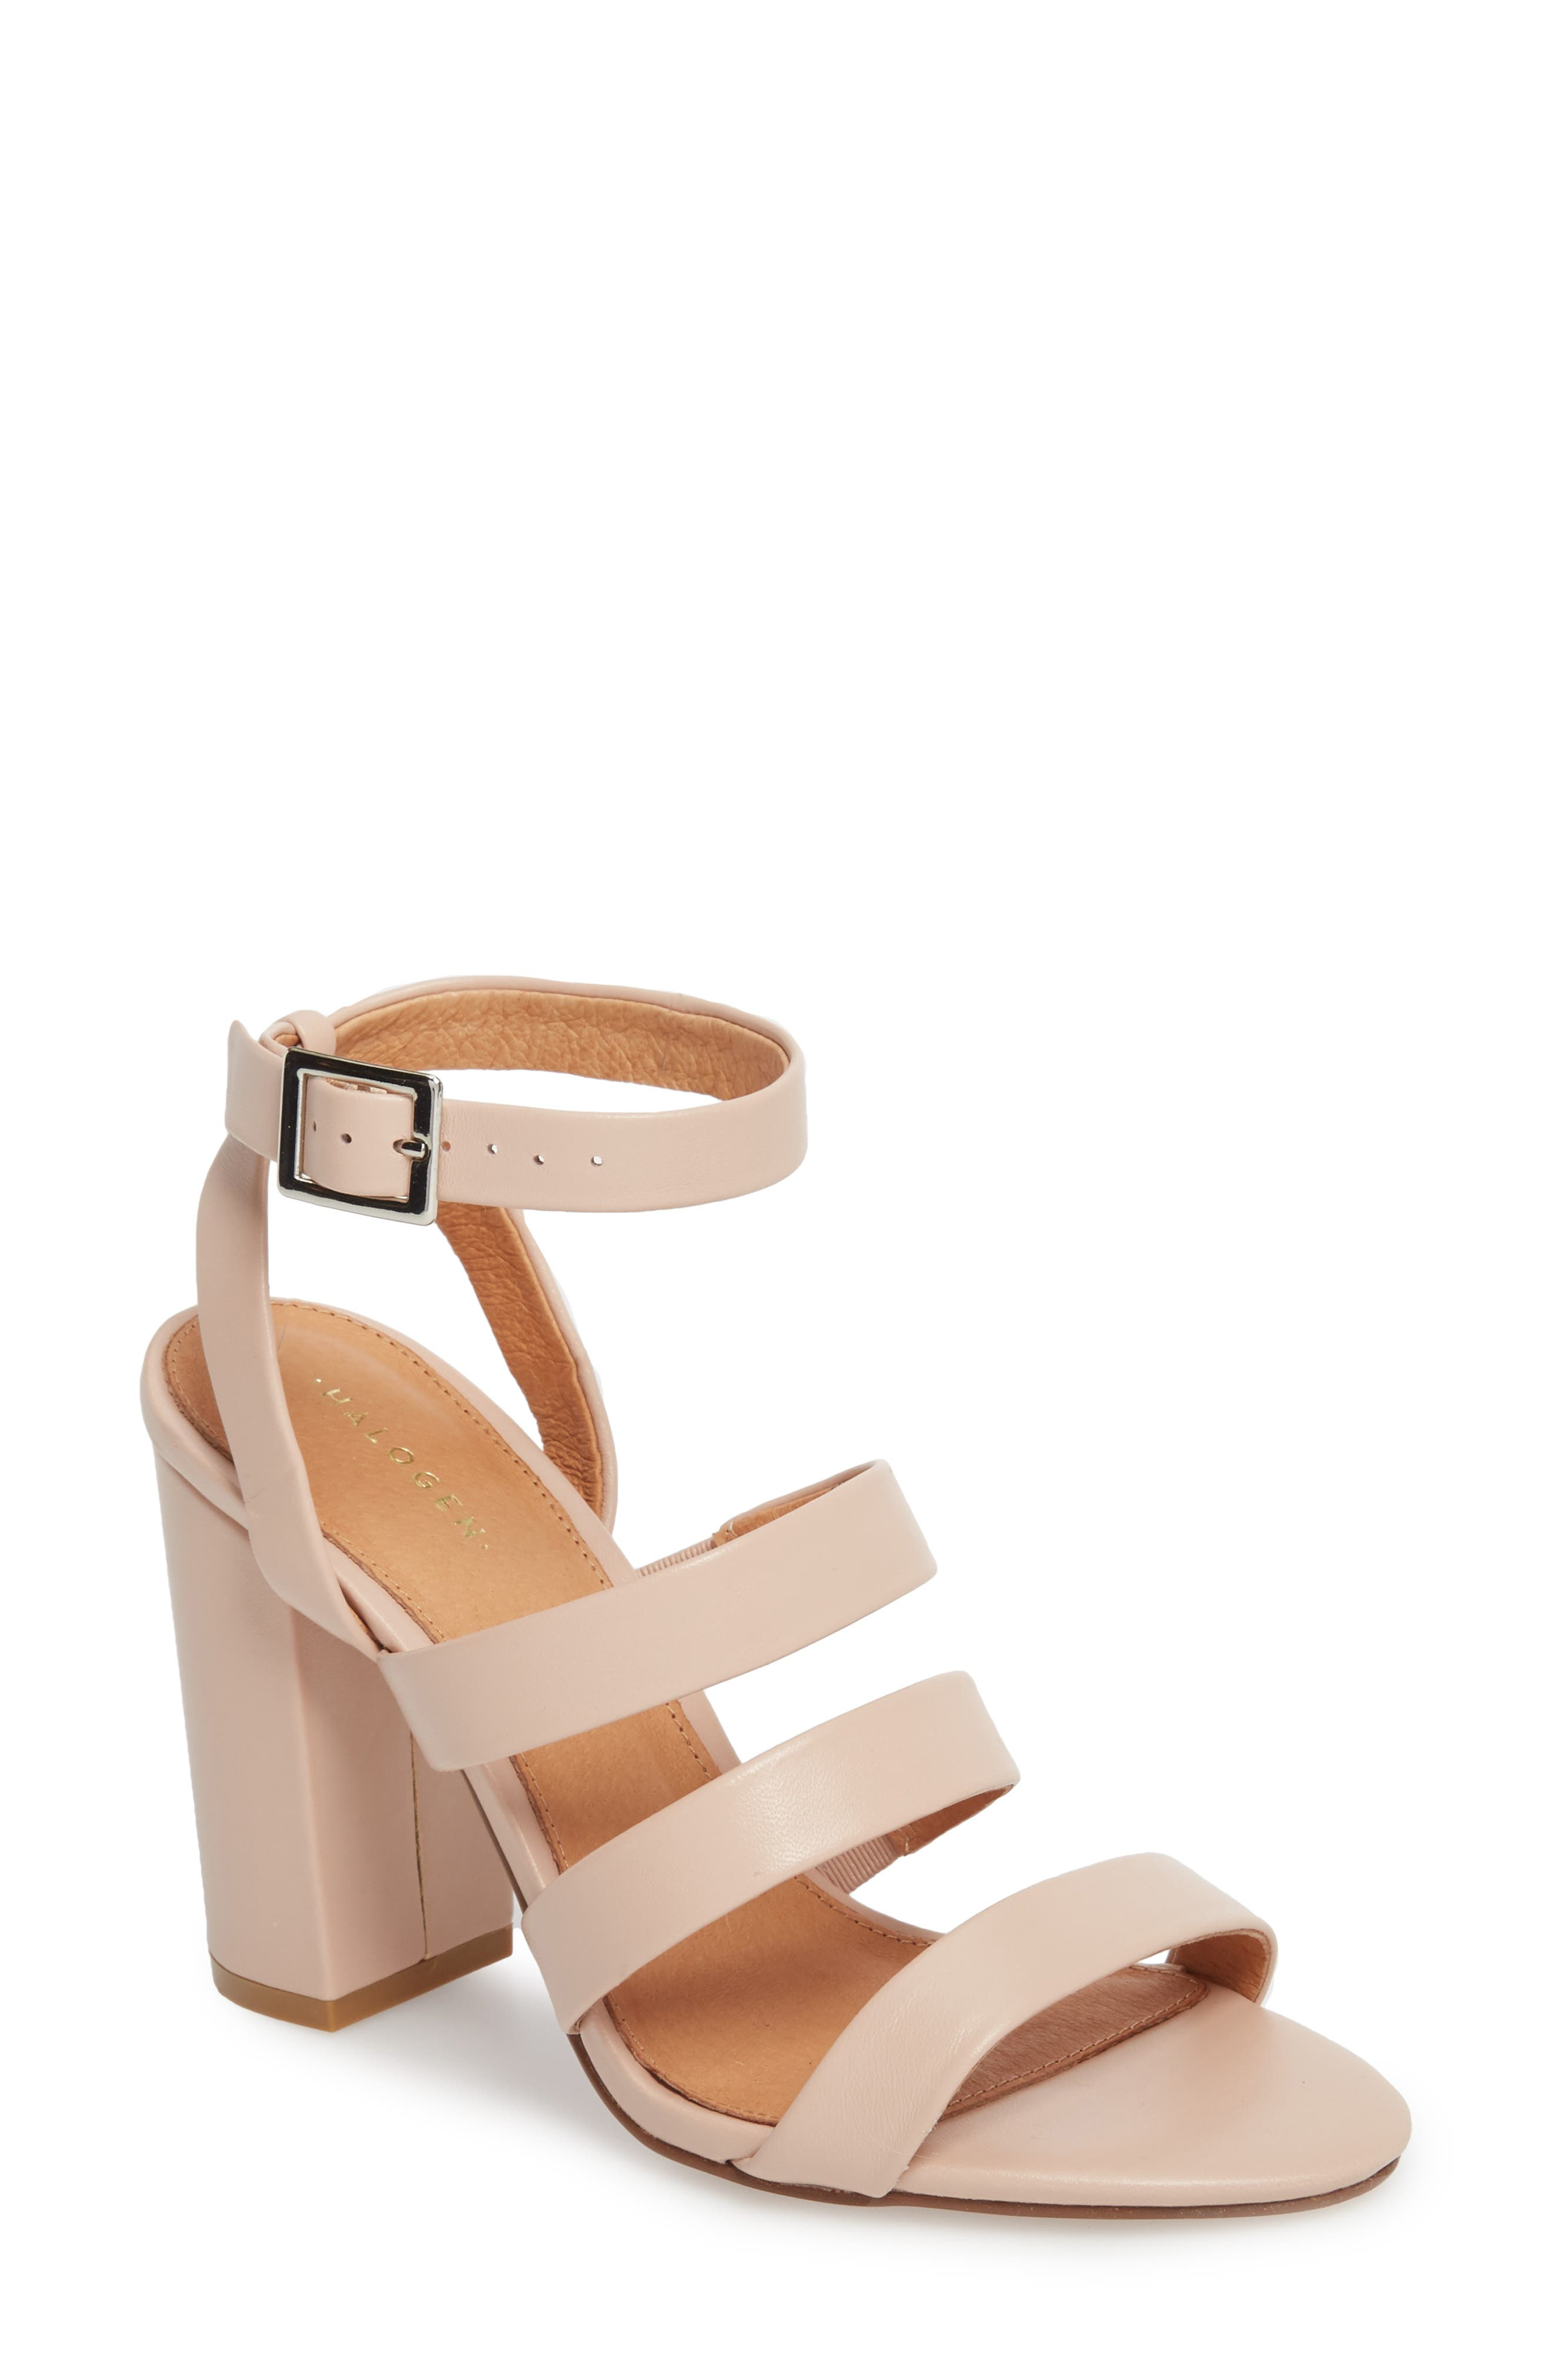 Rocco Sandal,                             Main thumbnail 1, color,                             BLUSH LEATHER